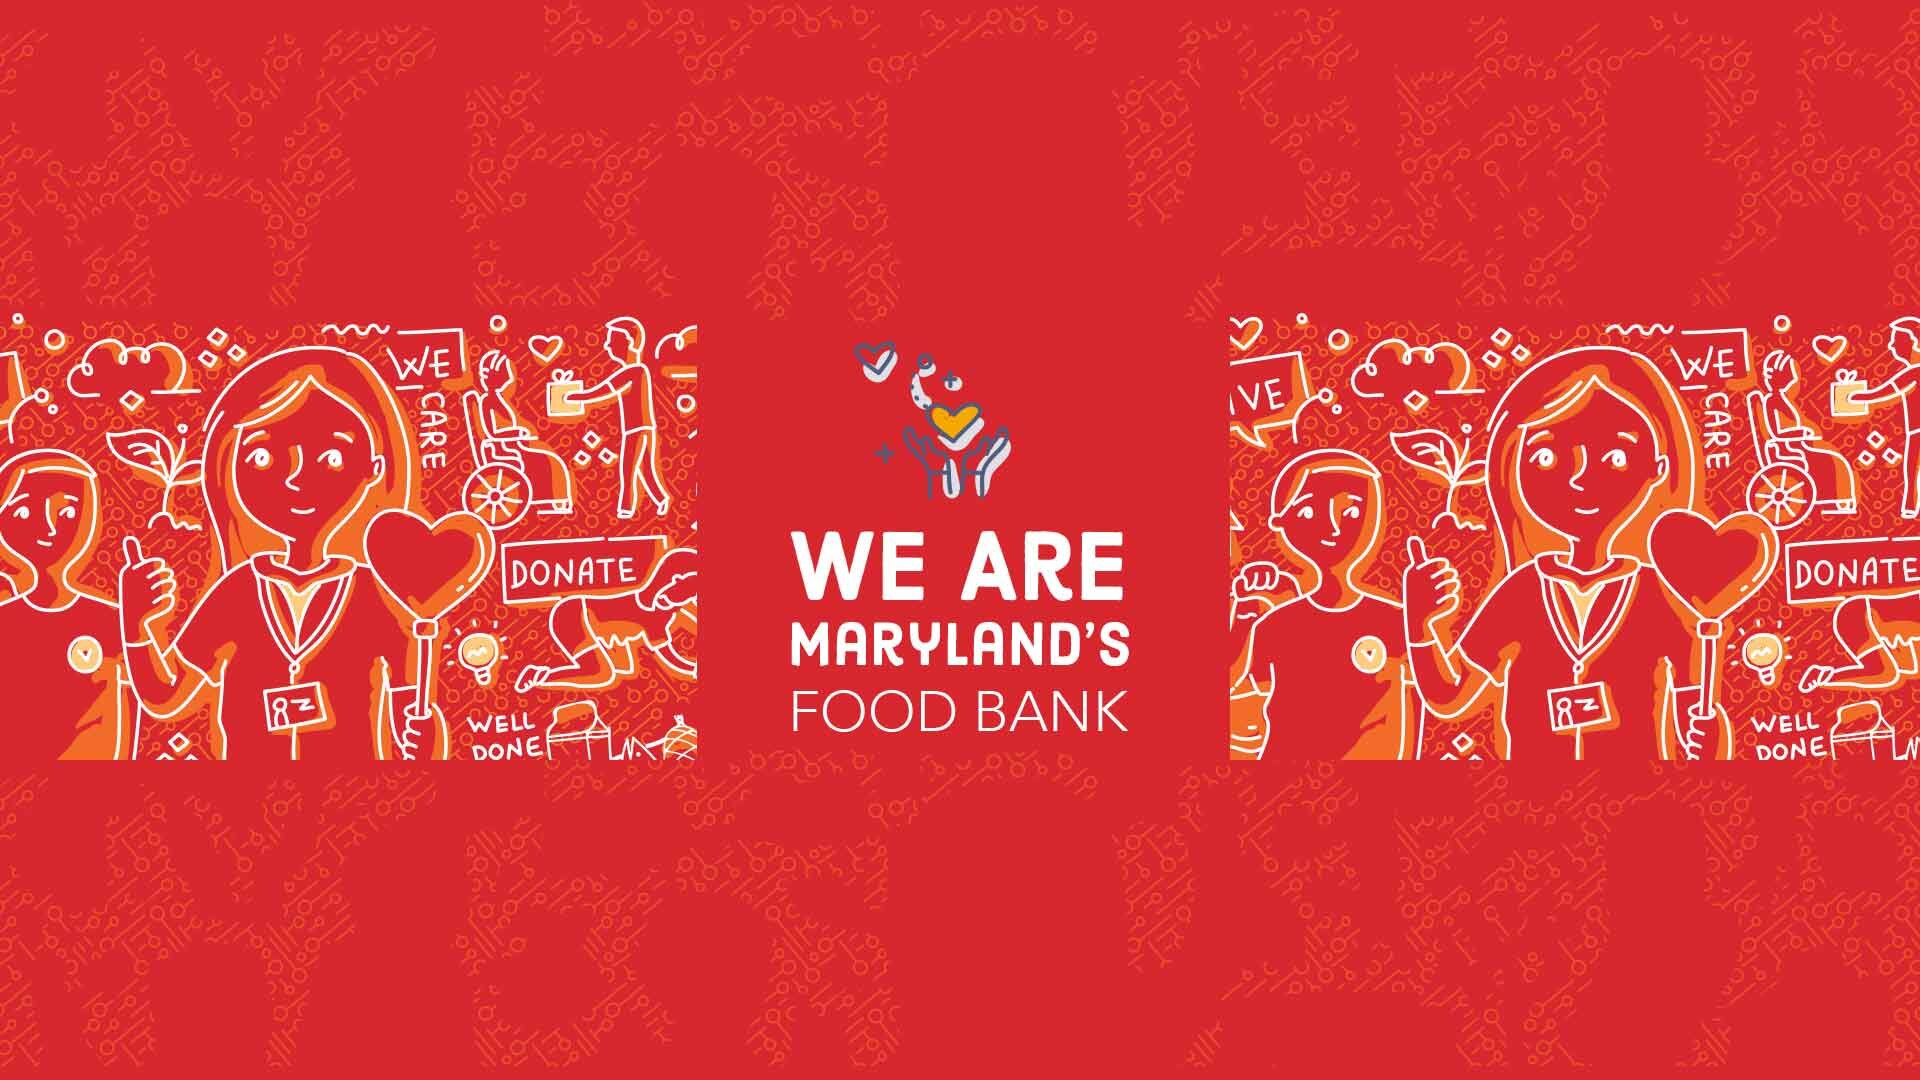 Maryland Food Bank Leadership Bios - Maryland Food Bank is an amazing organization leading the movement to end hunger in our state. I was honored to write the bios for their rockstar leadership team in January, 2019.